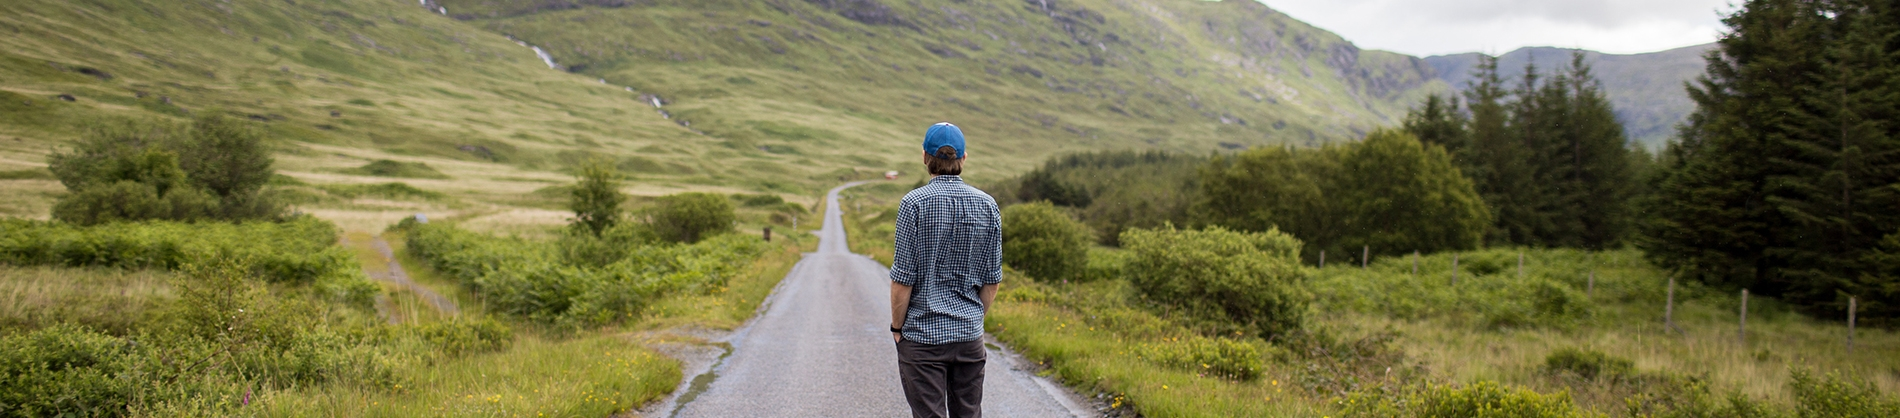 A man looking back on a long path in a valley